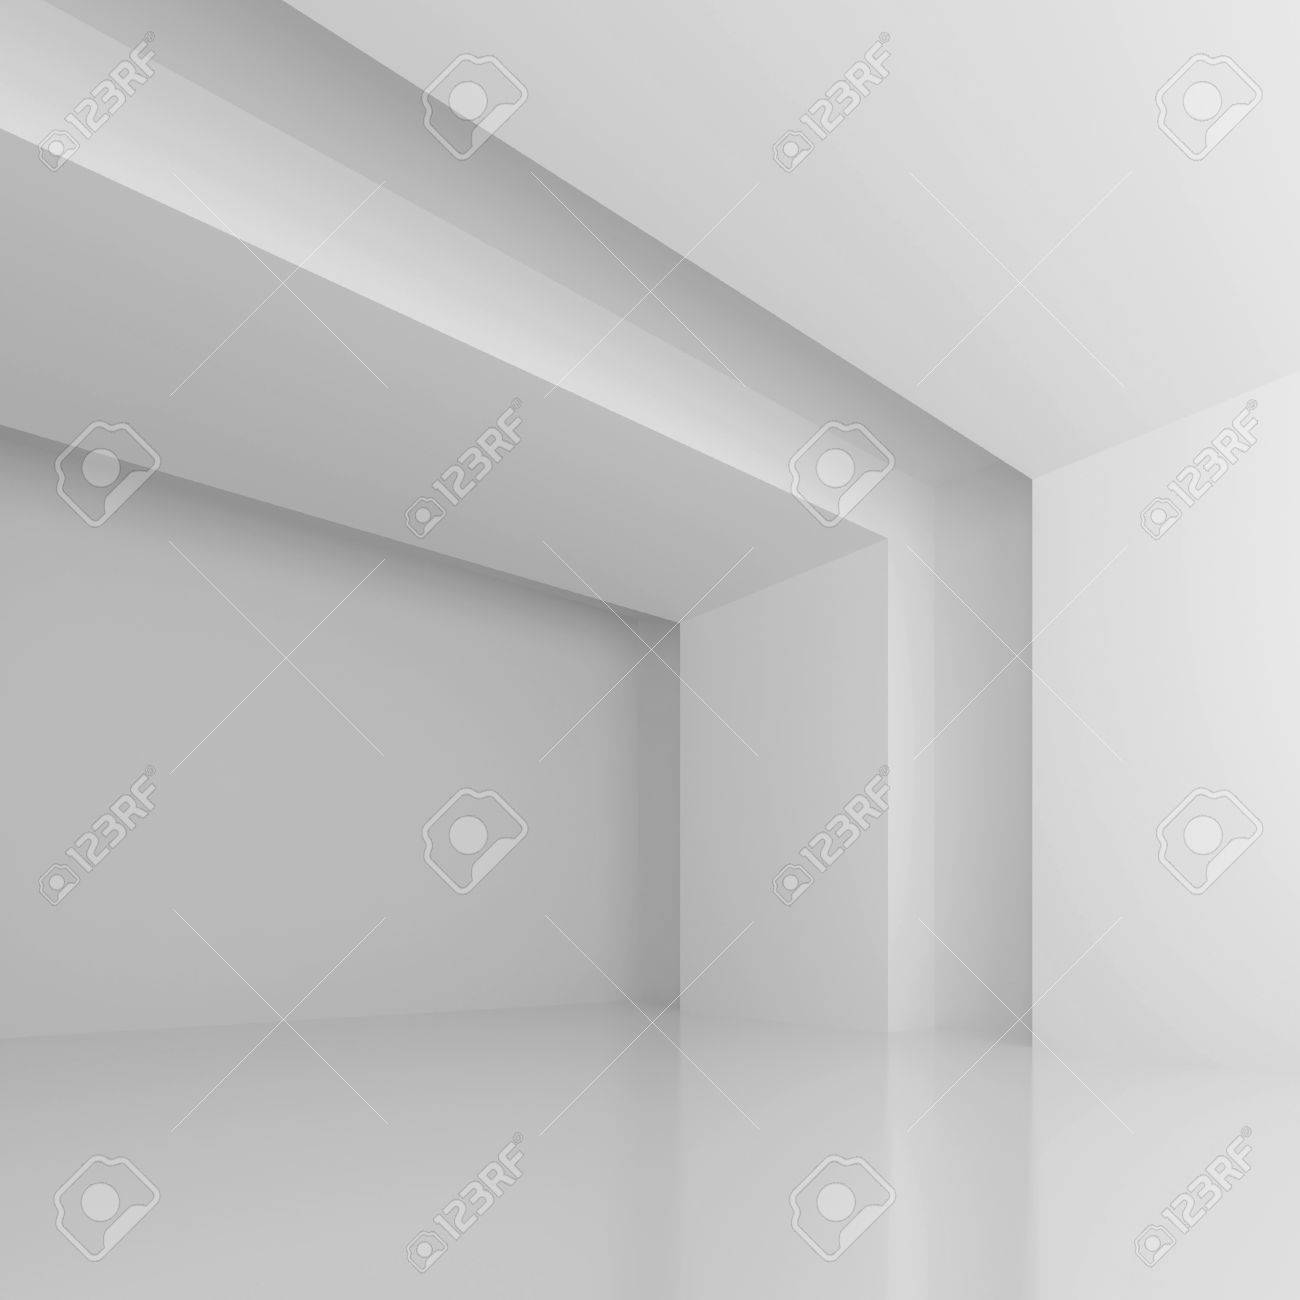 White Futuristic Hall Stock Photo - 10103467